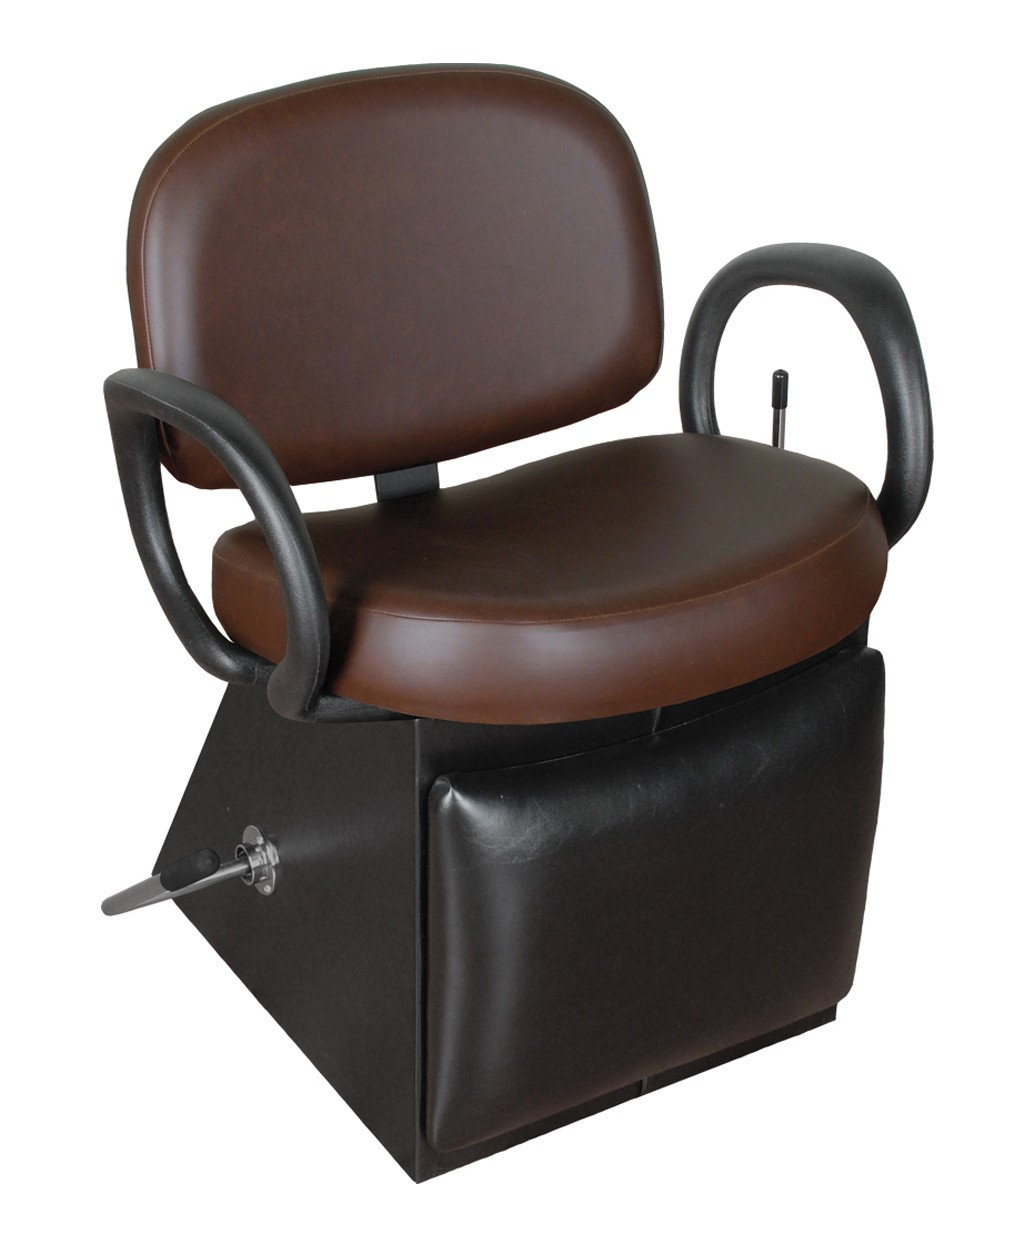 1650L Kiva Lever-Control Shampoo Chair with Leg Rest